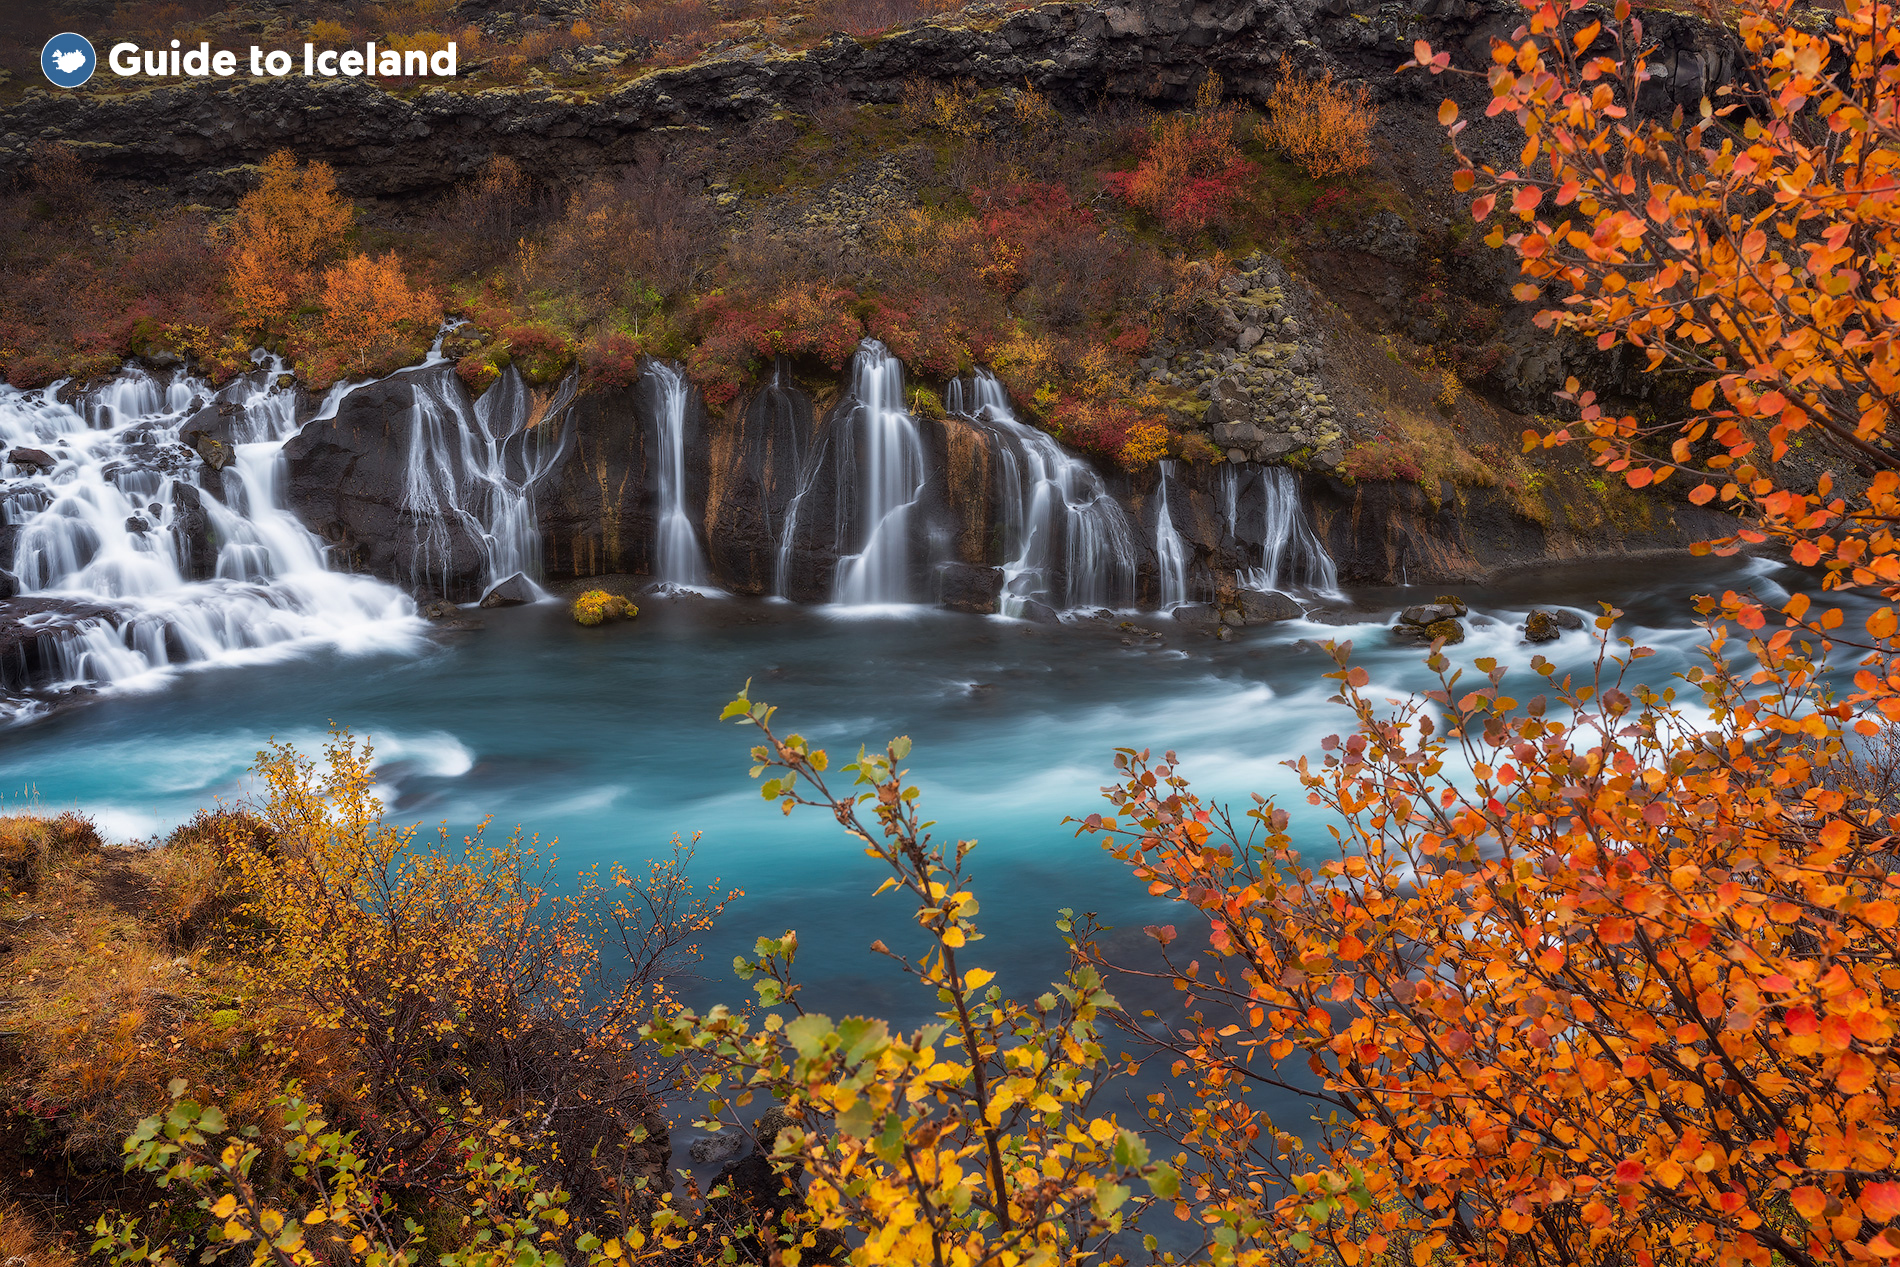 The gentle waterfalls of Hraunfossar trickle from a lava field surrounded by birch forests.